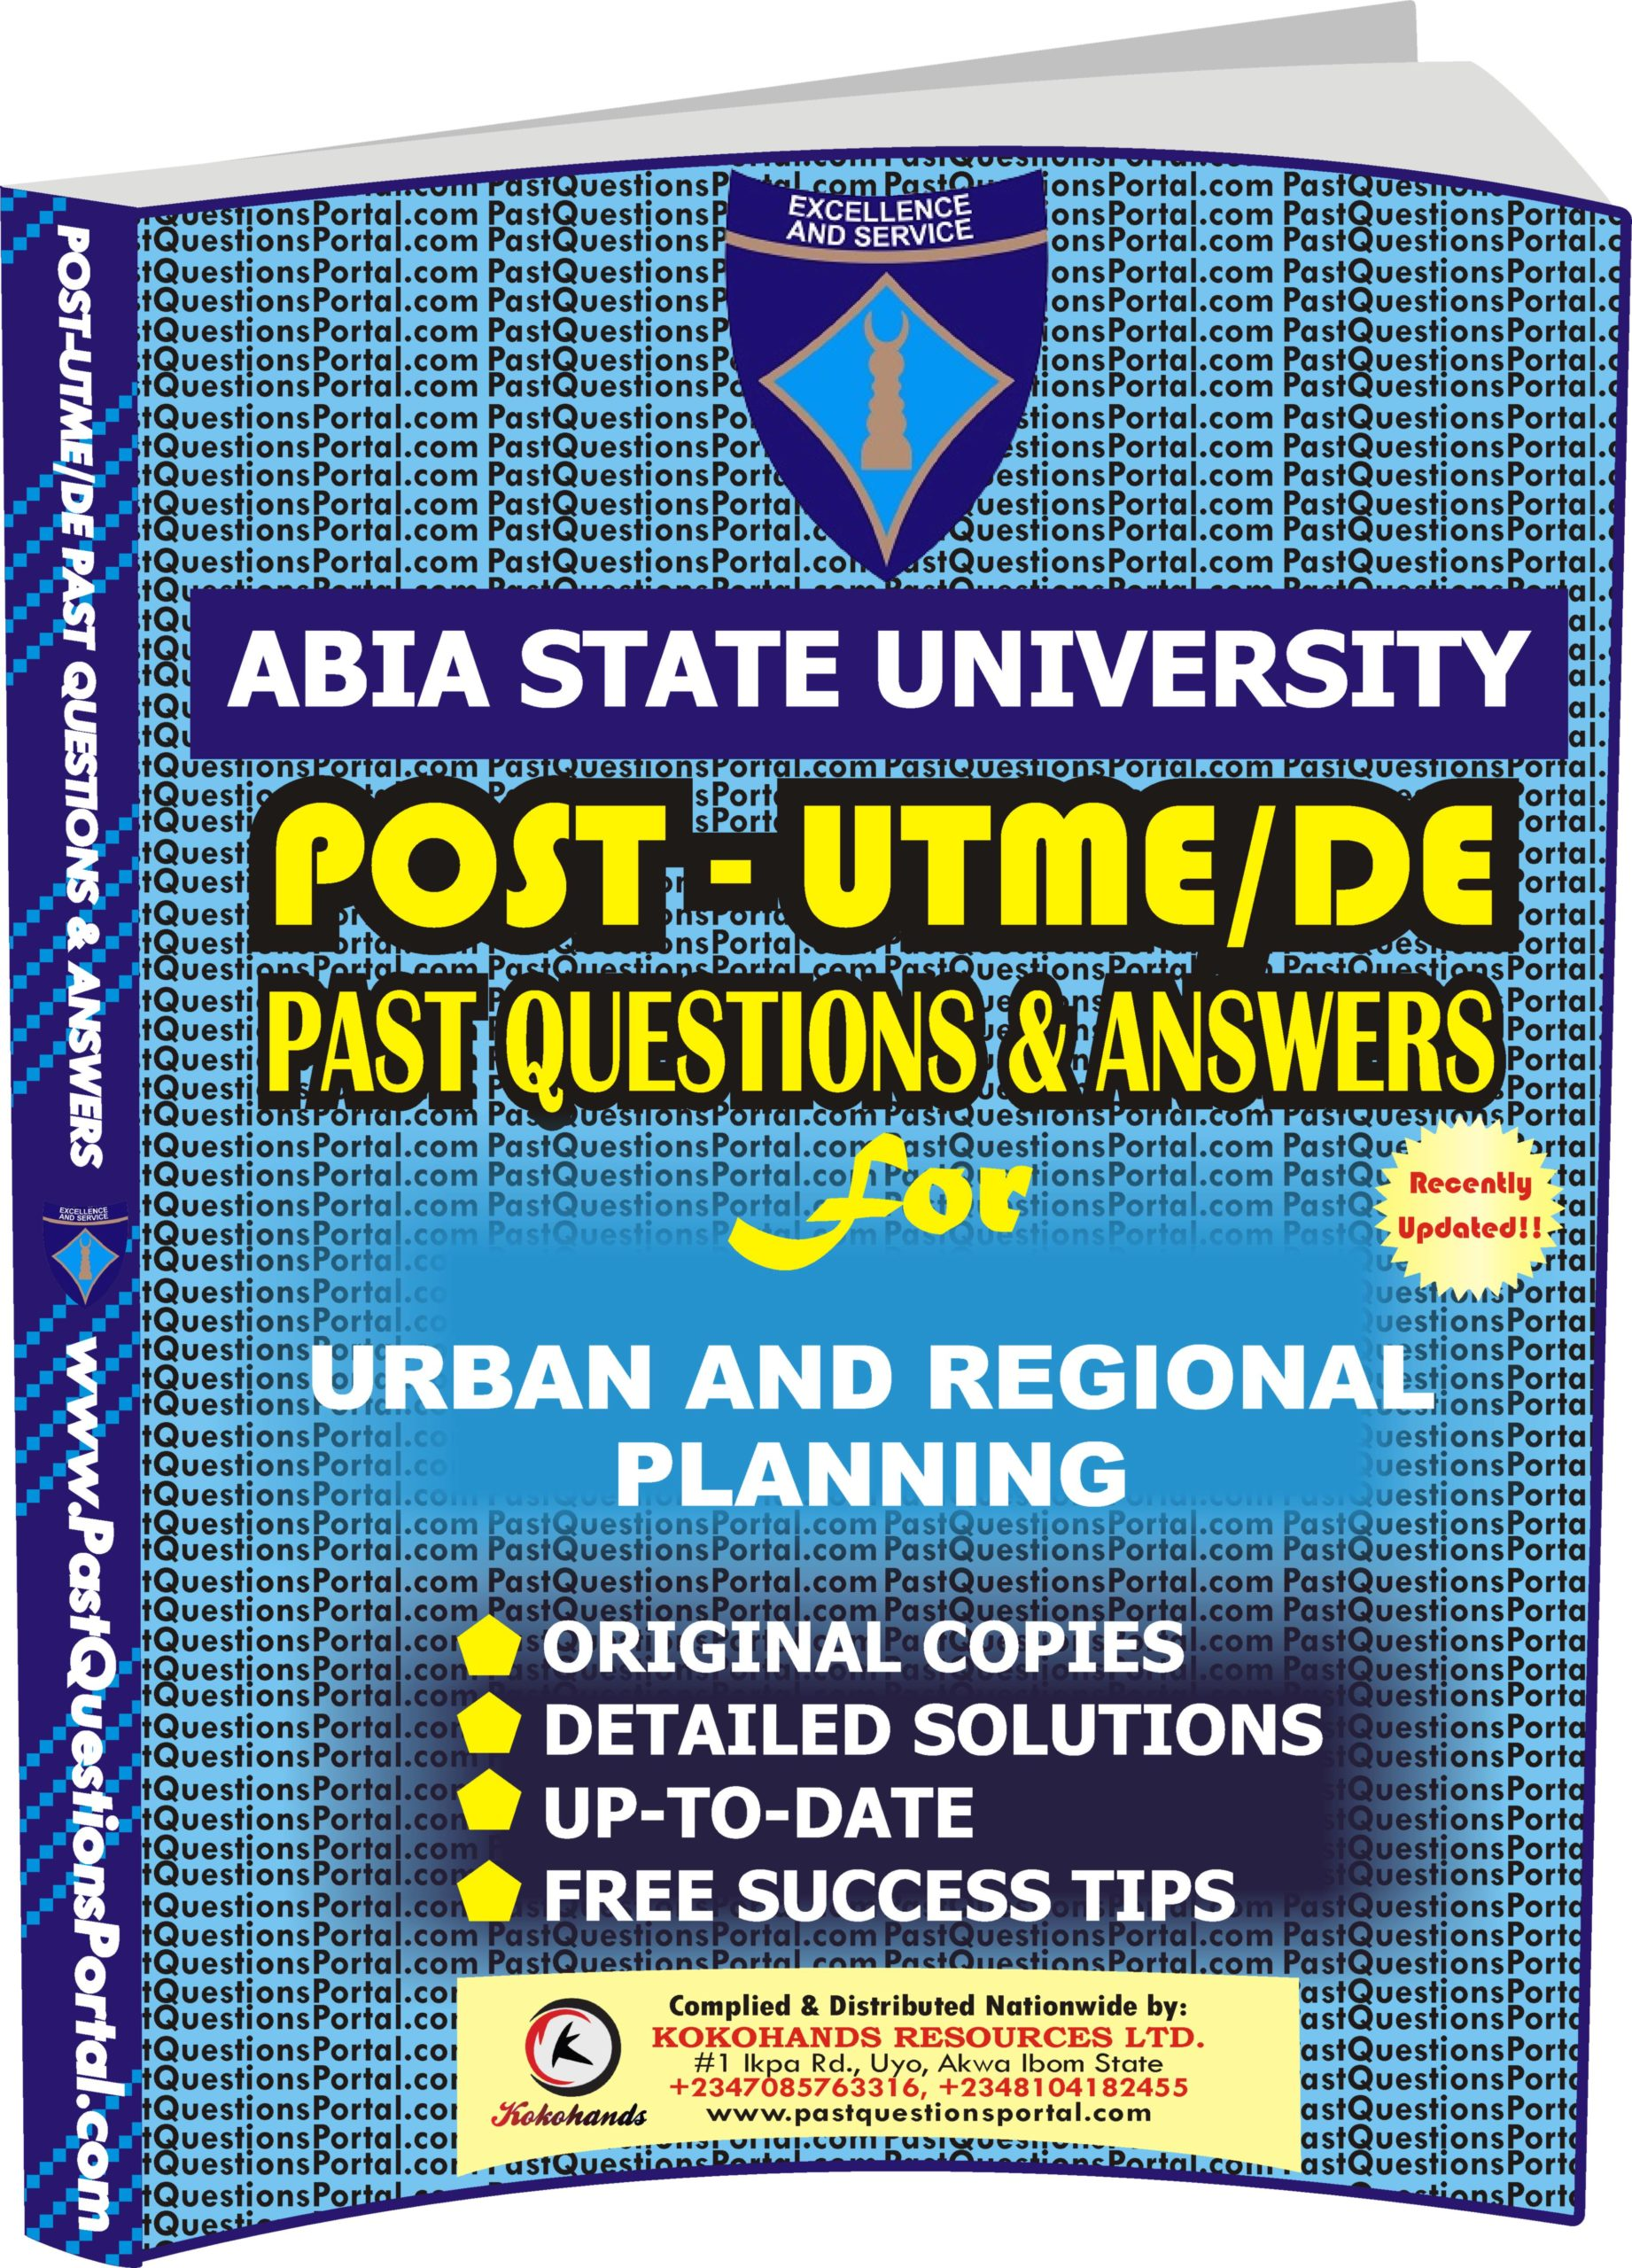 ABSU Post UTME Past Questions for Urban and Regional Planning